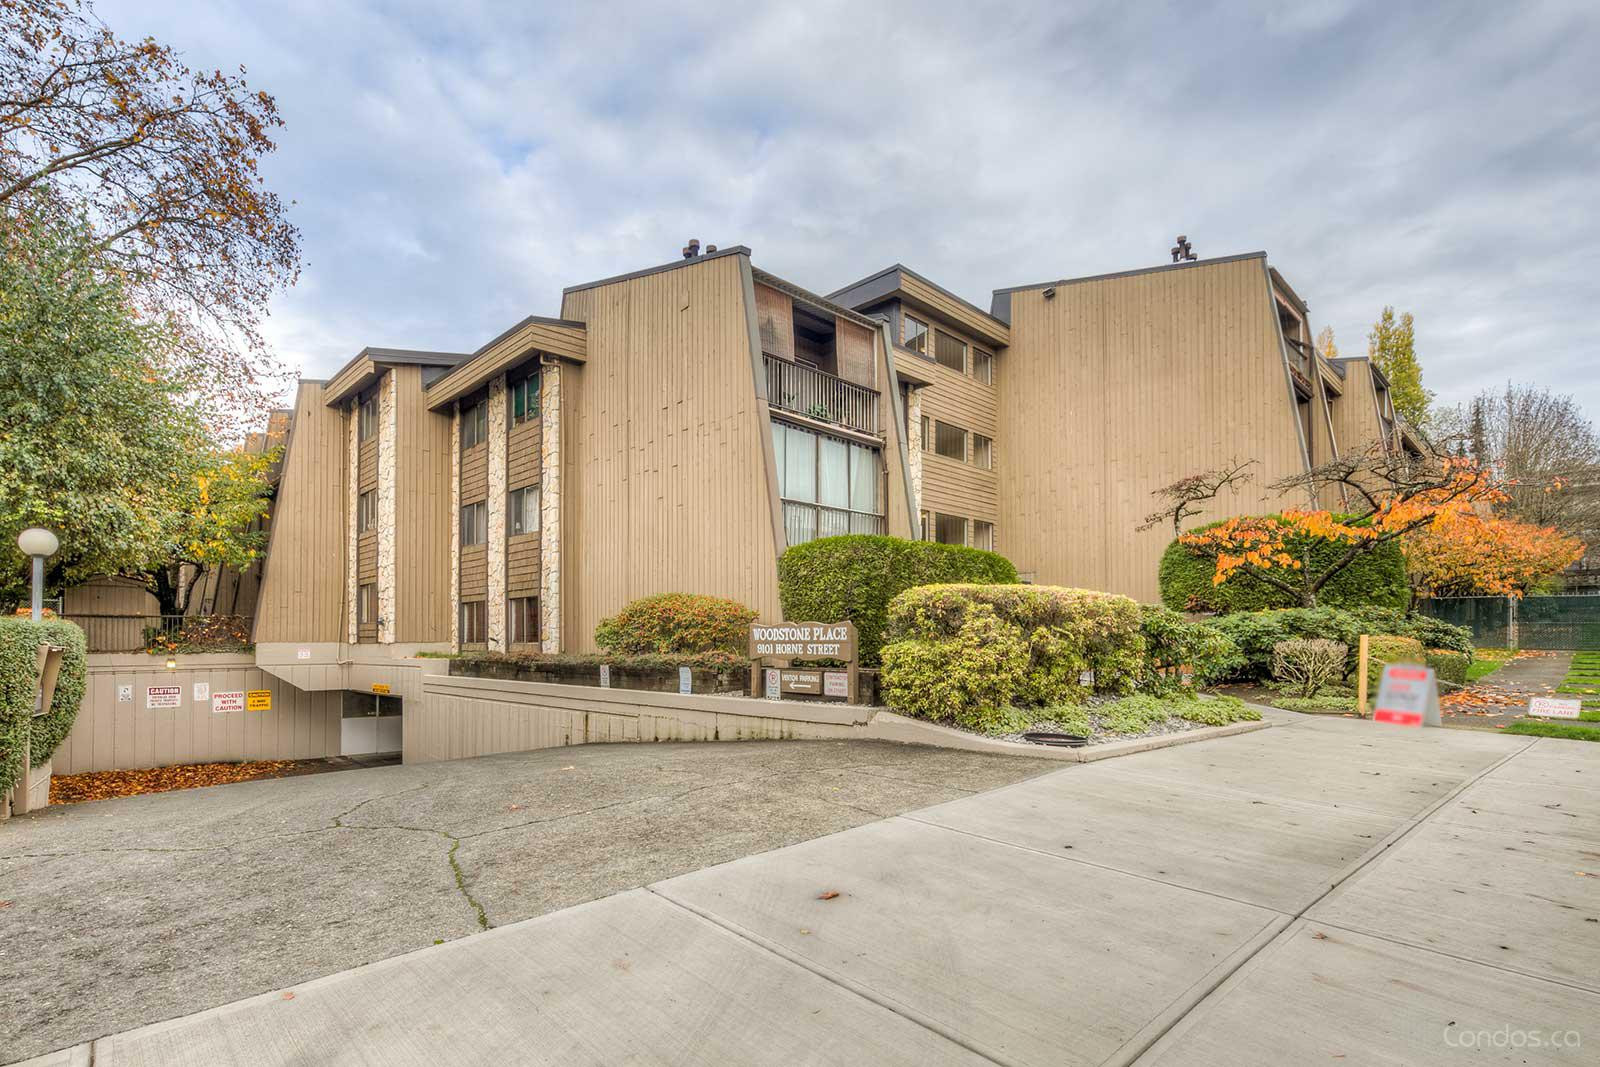 Woodstone Place at 9101 Horne St, Burnaby 0